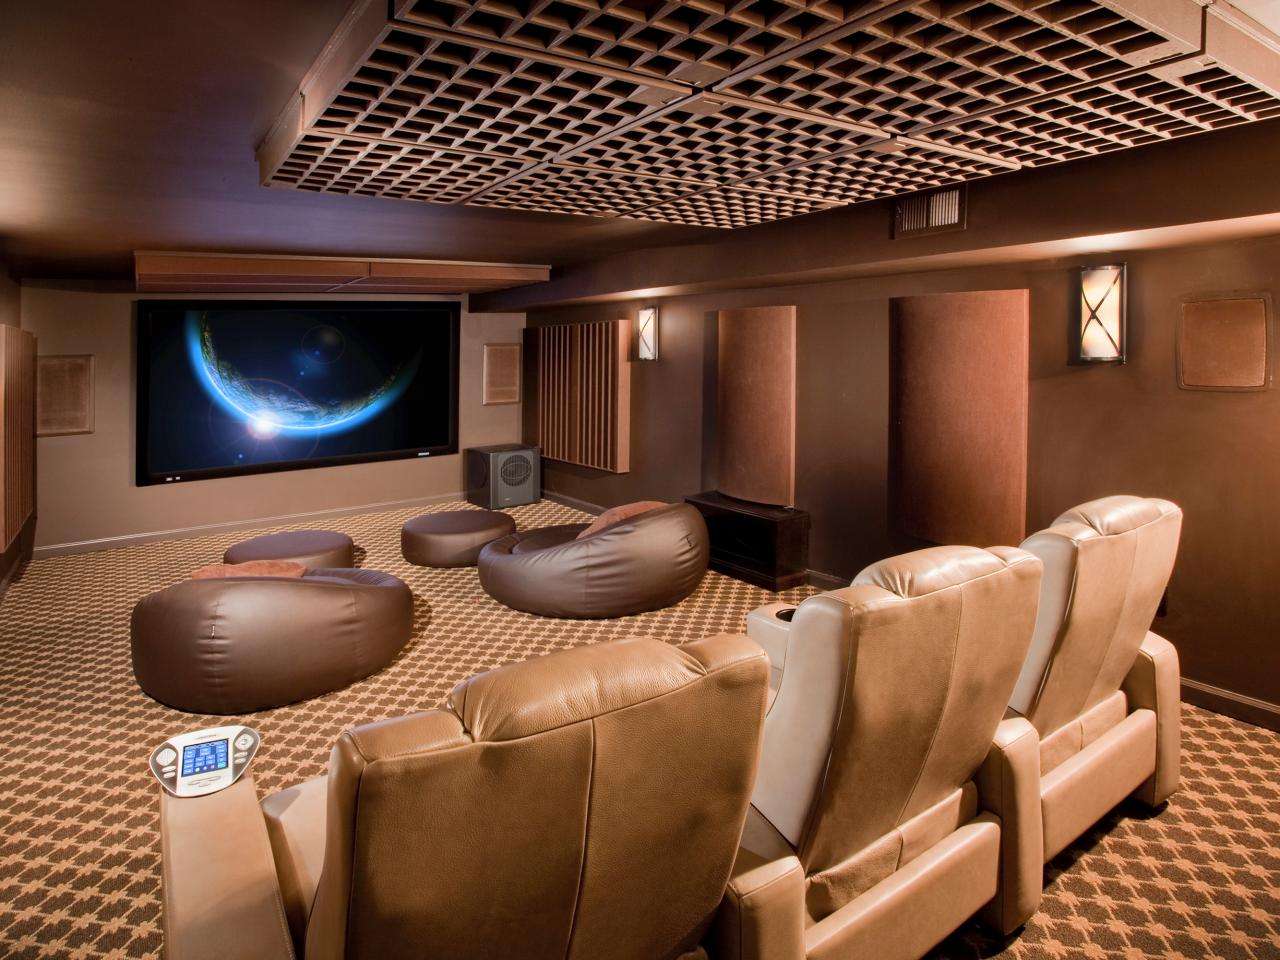 Building a home theater pictures options tips ideas for 9 ft wide living room